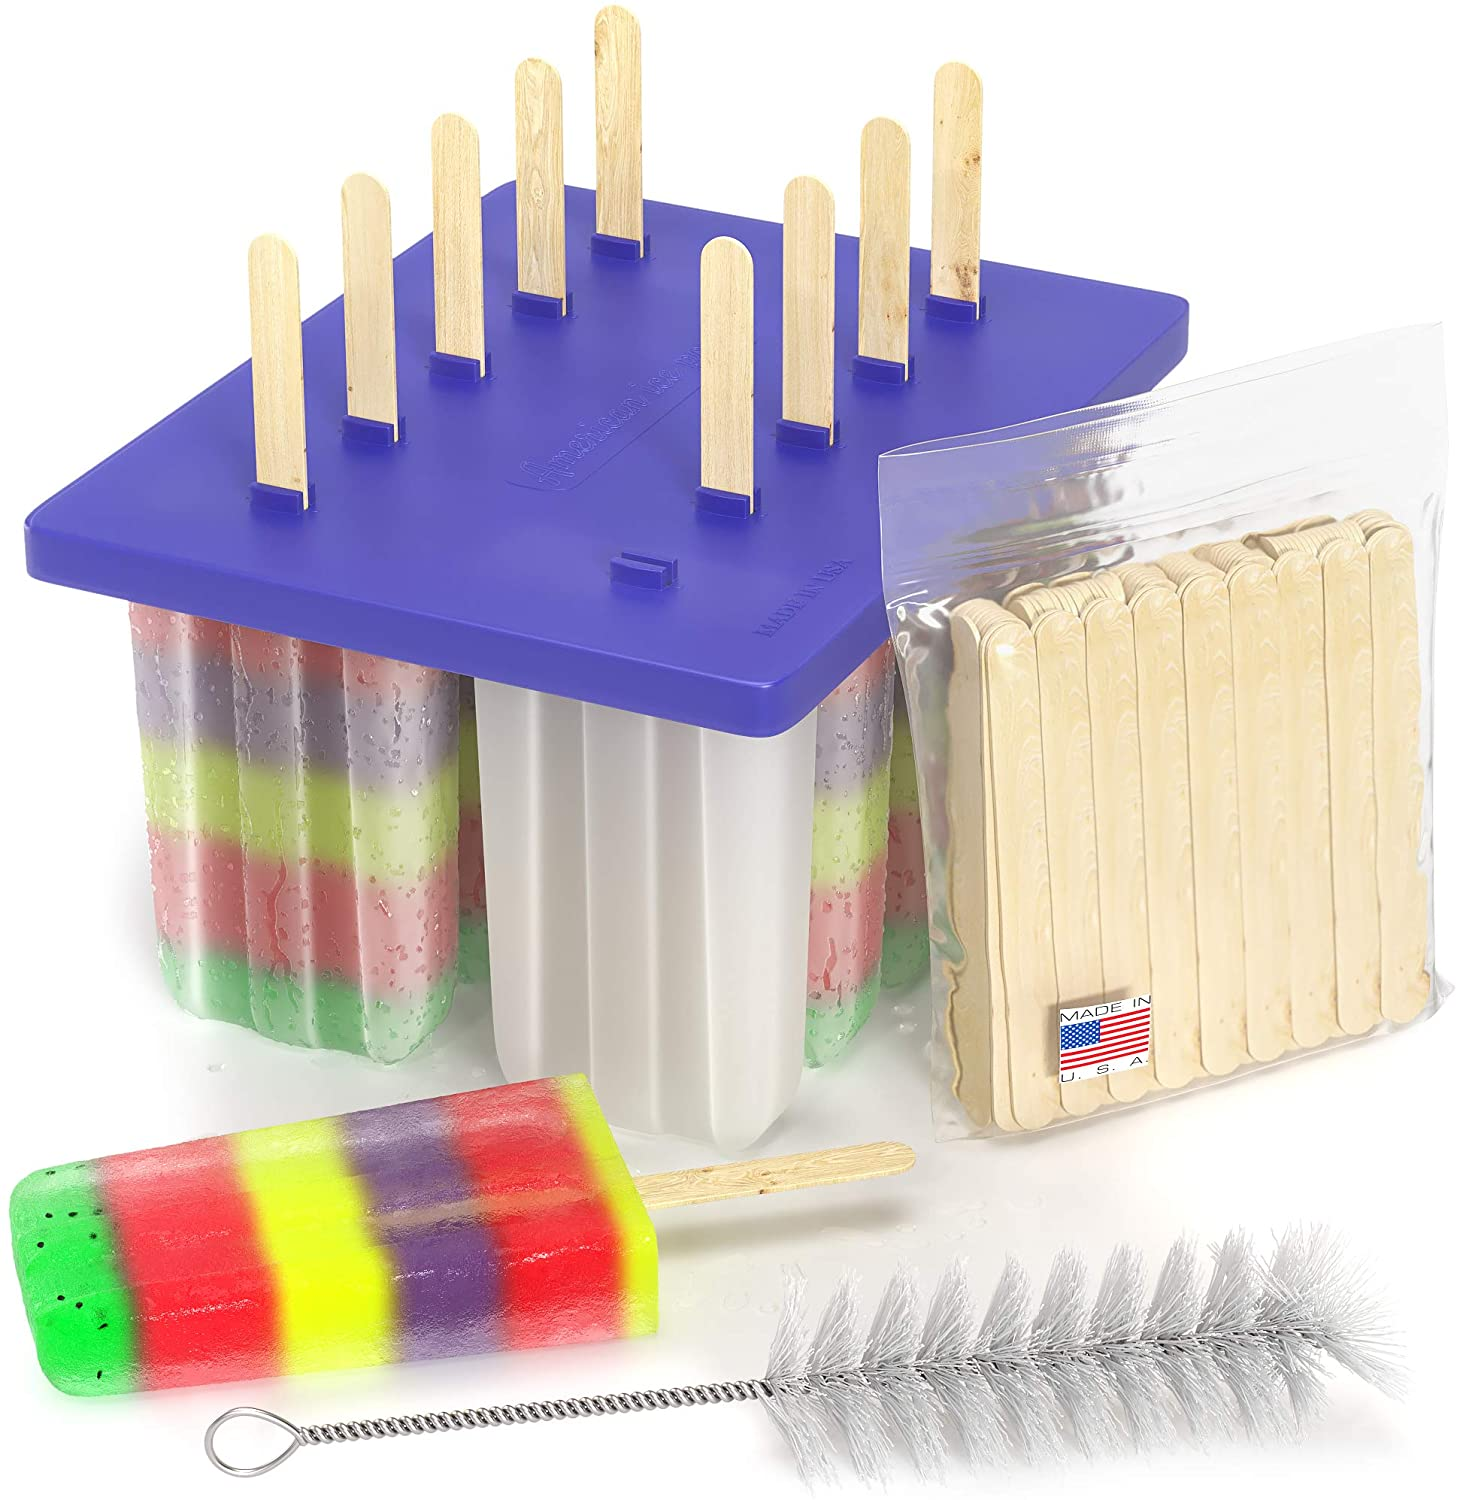 American Ice Pop Maker - Frozen Para Moldes Recommendation Selling Pa Popsicle Kit Mold